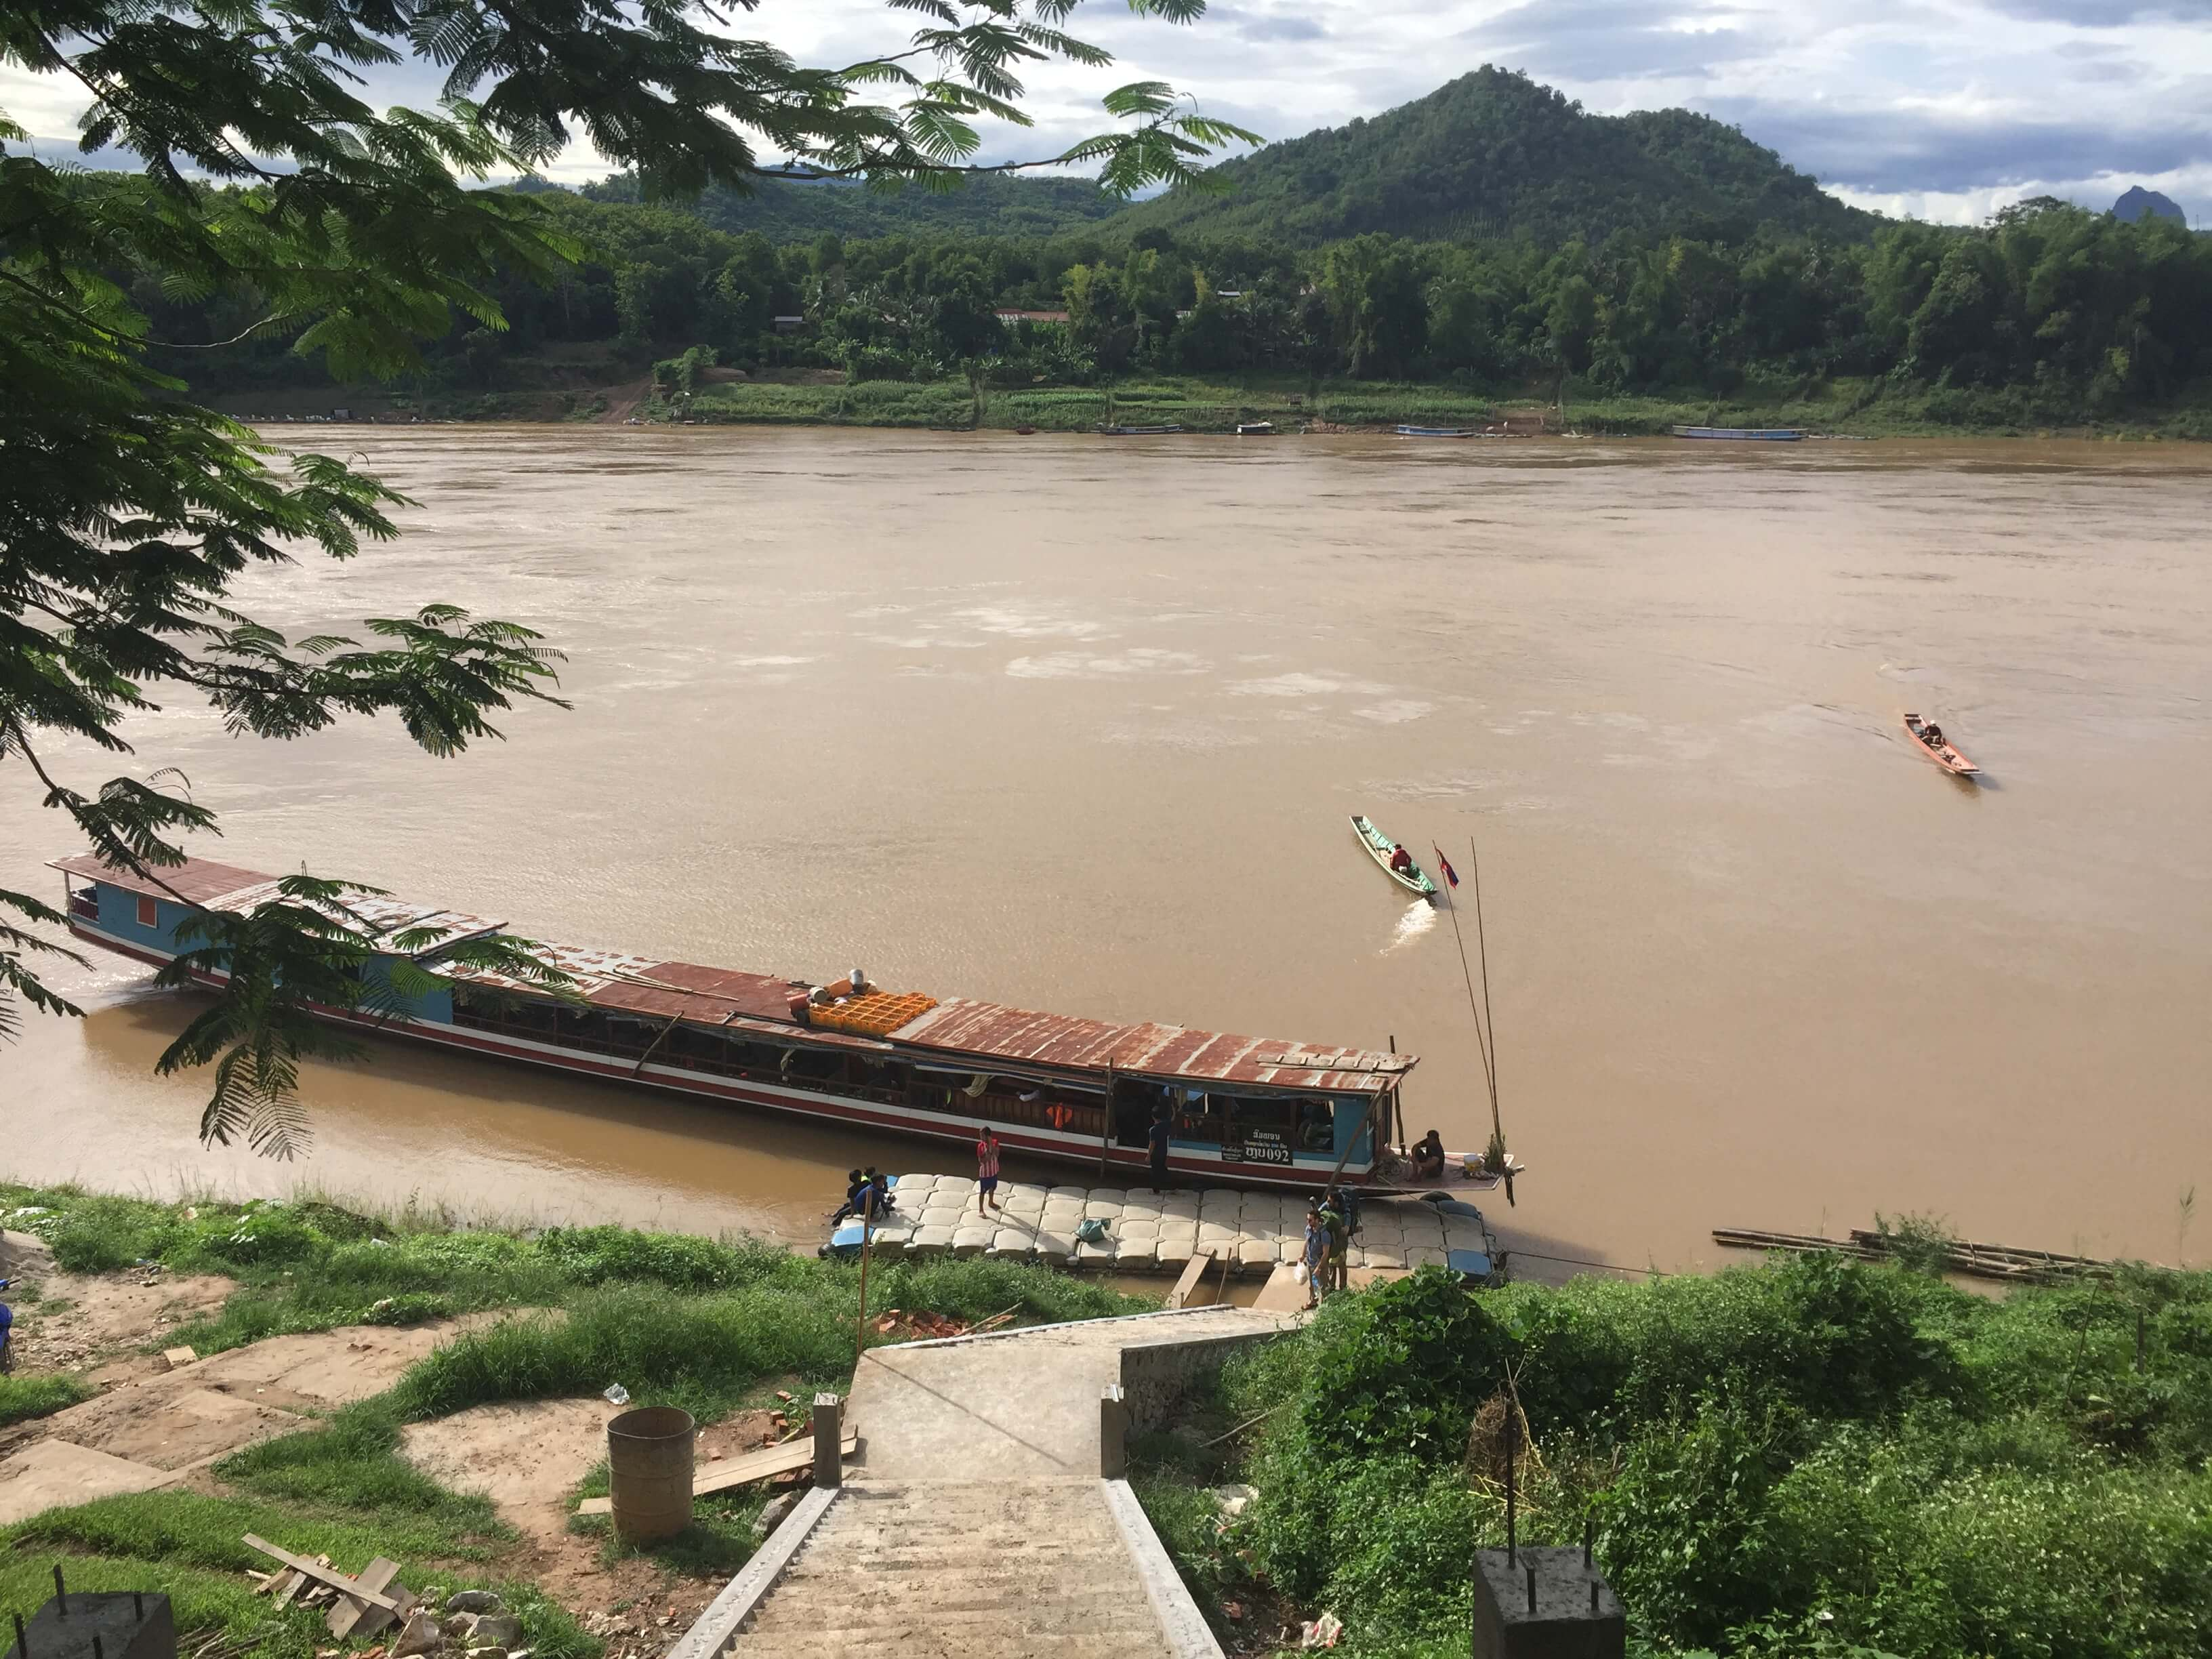 The Port of Luang Prabang in Laos